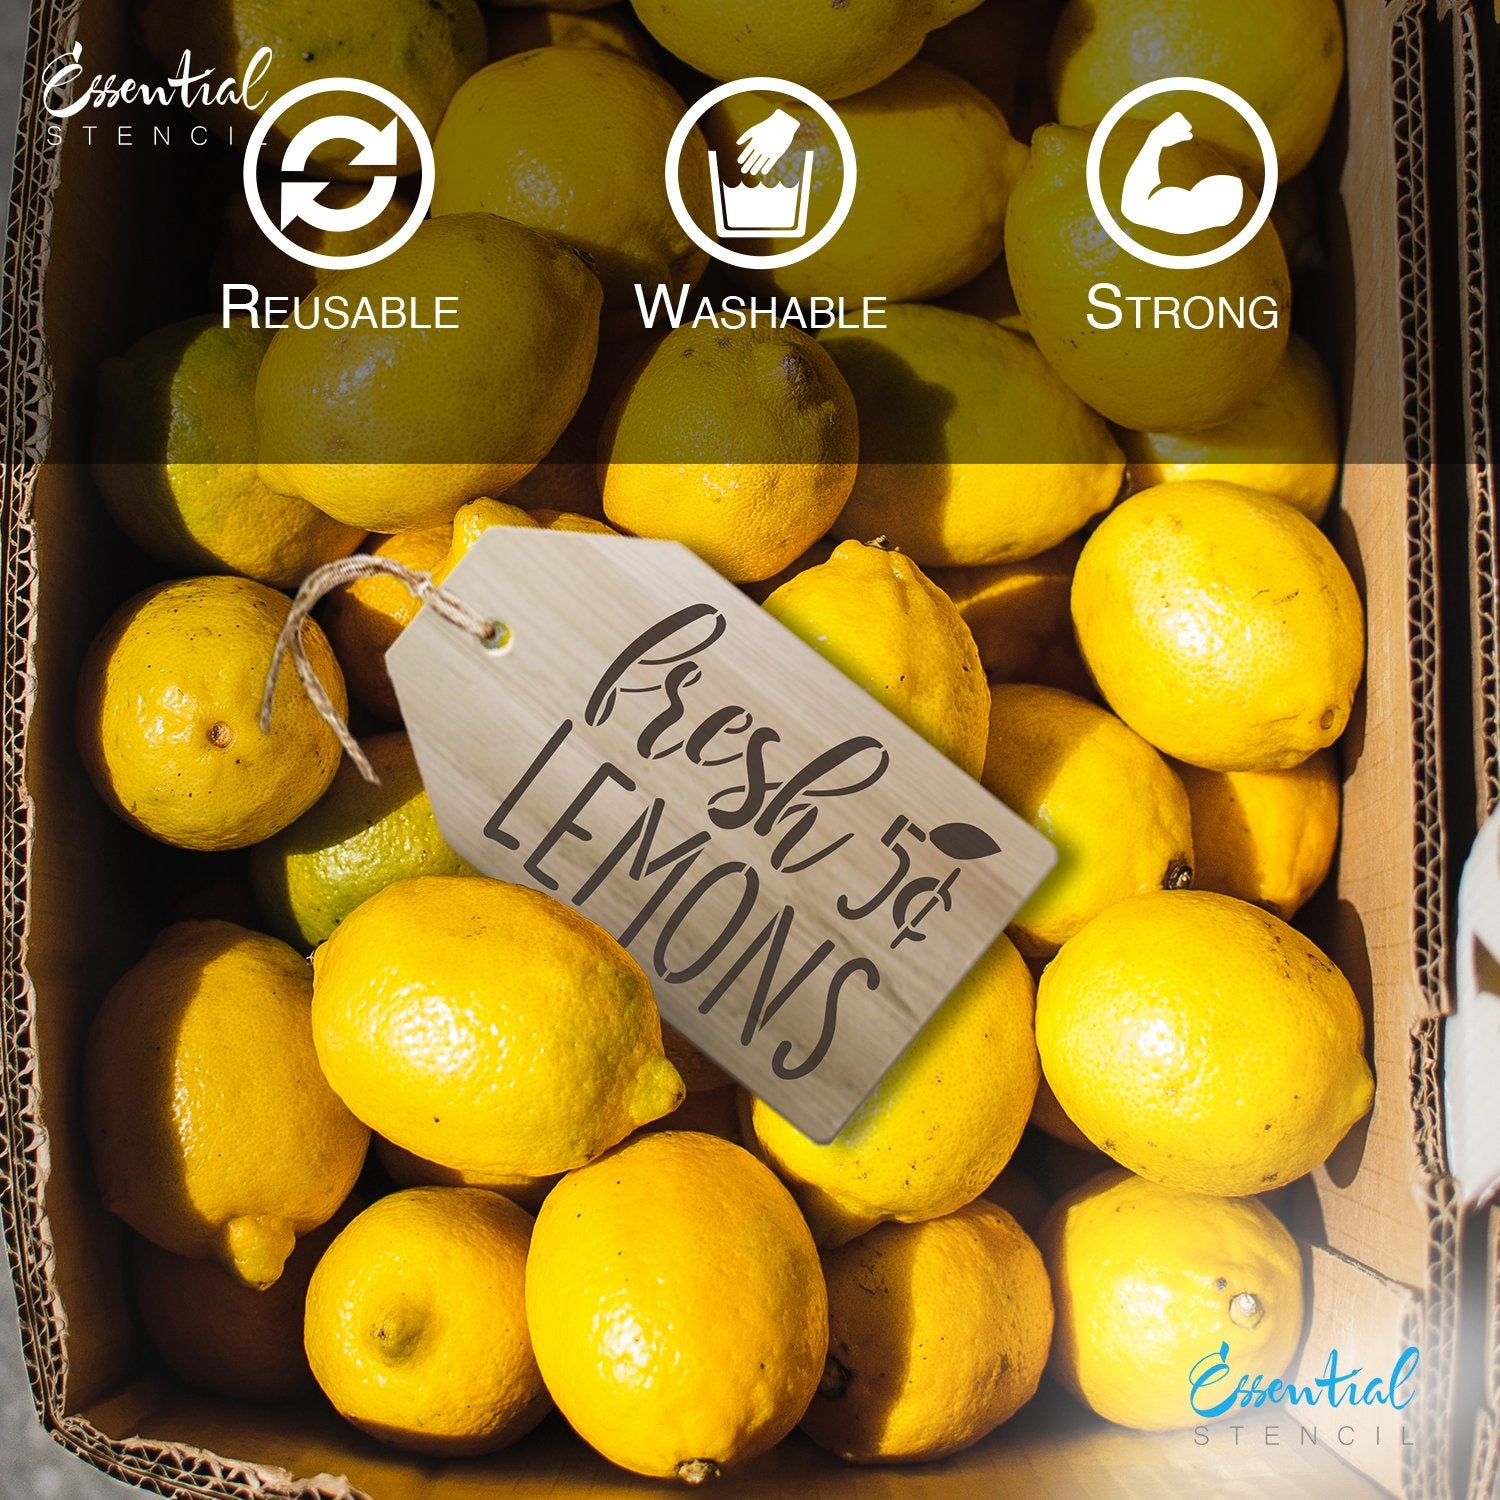 DIY reusable Lemon mini tag sign stencils, lemons mini sign stencils, sweet lemon farm lemon vintage truck stencil, be zesty stencil, fresh lemons 5 cents stencil, lemon tier tray sign stencils